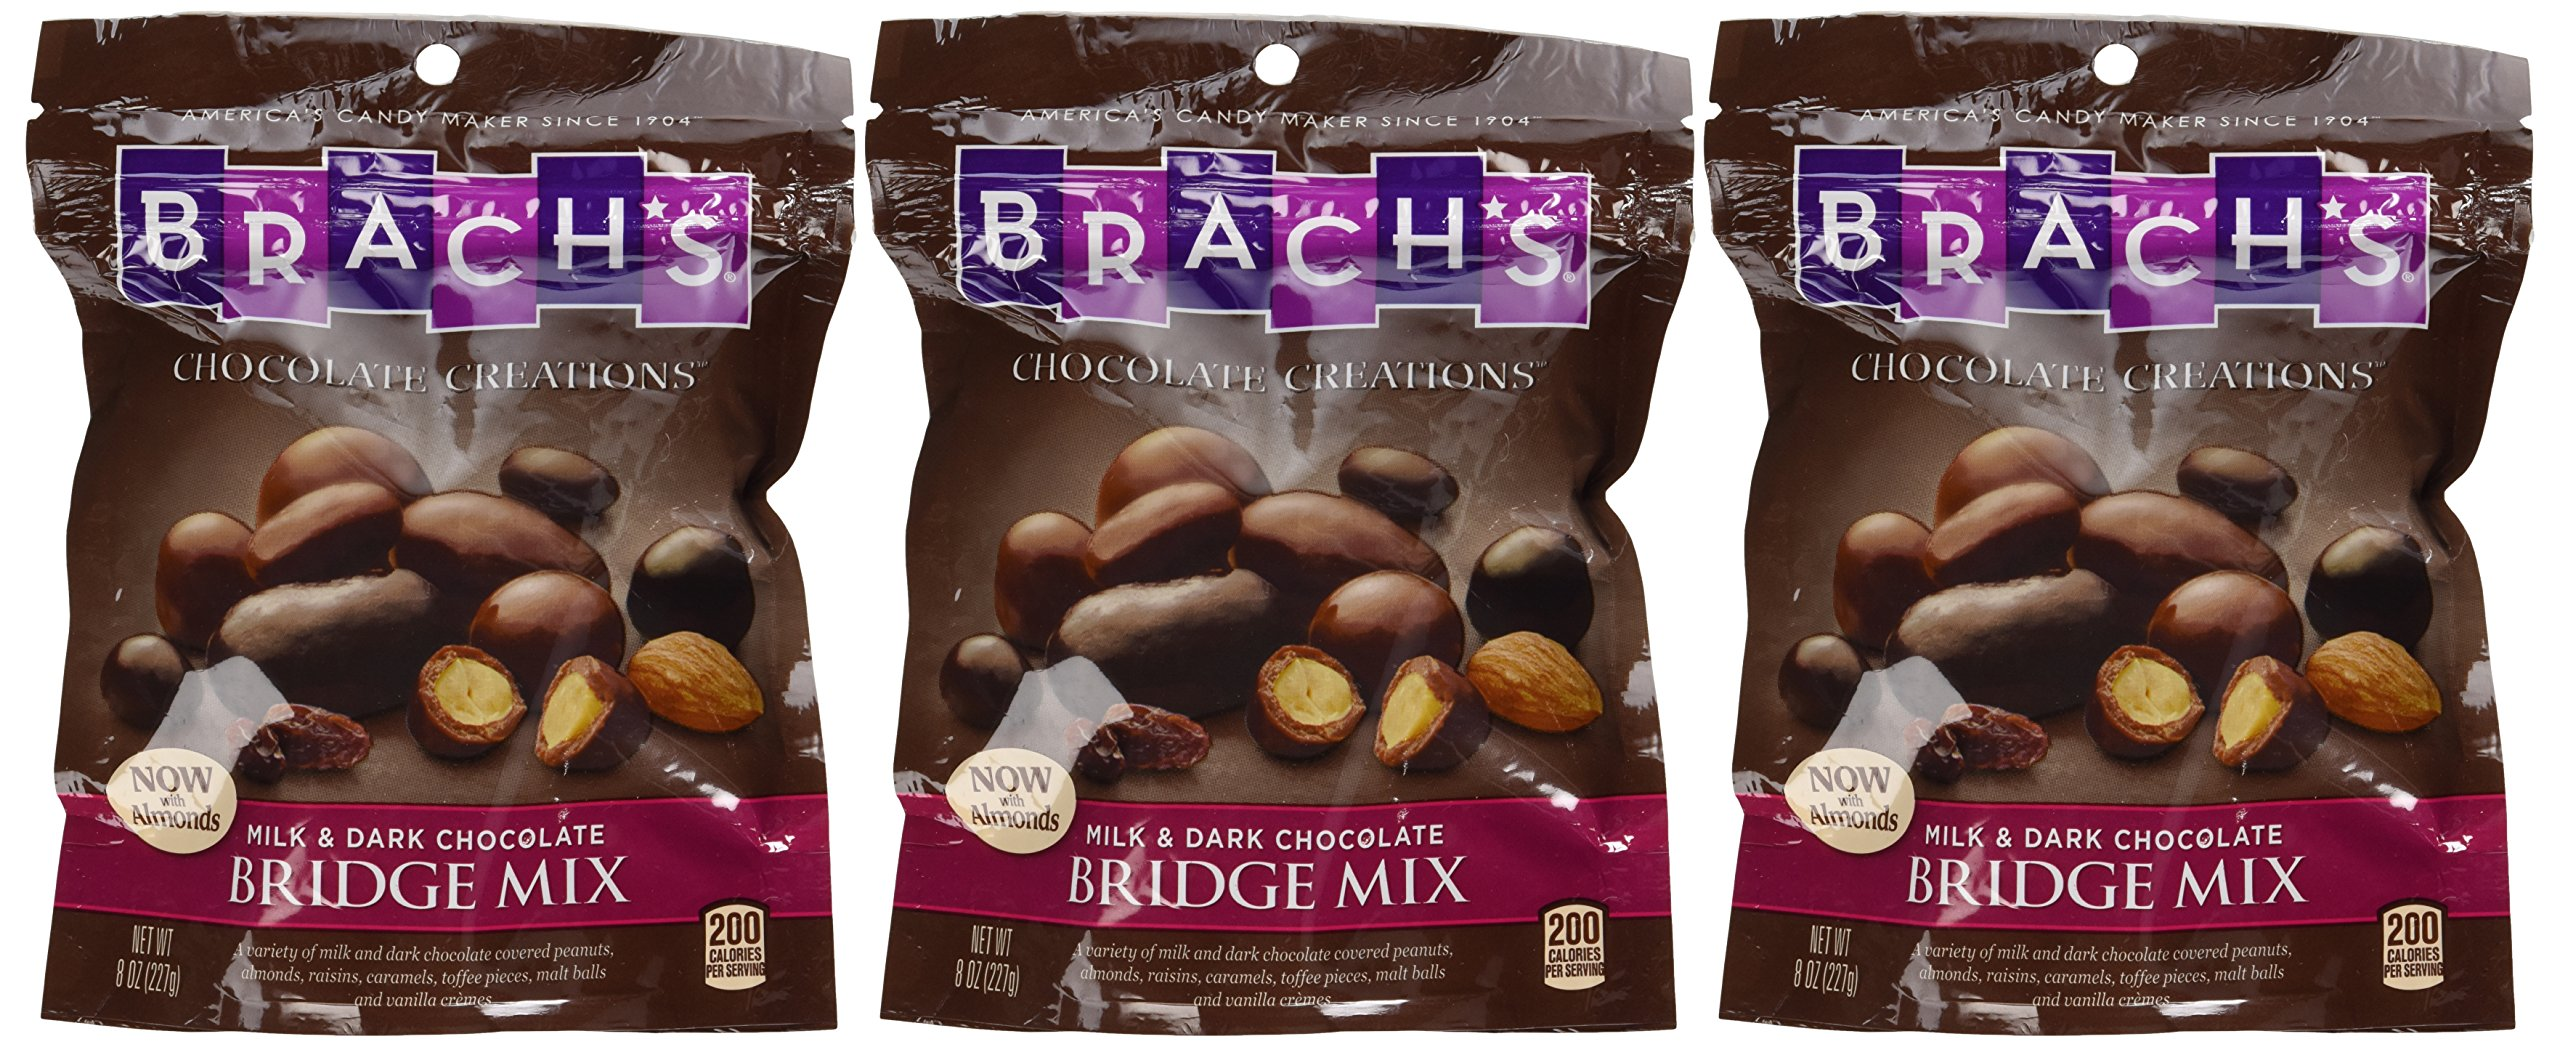 Brach's, Bridge Mix, Milk & Dark Chocolate now with Almonds, 8oz Bag (Pack of 3)